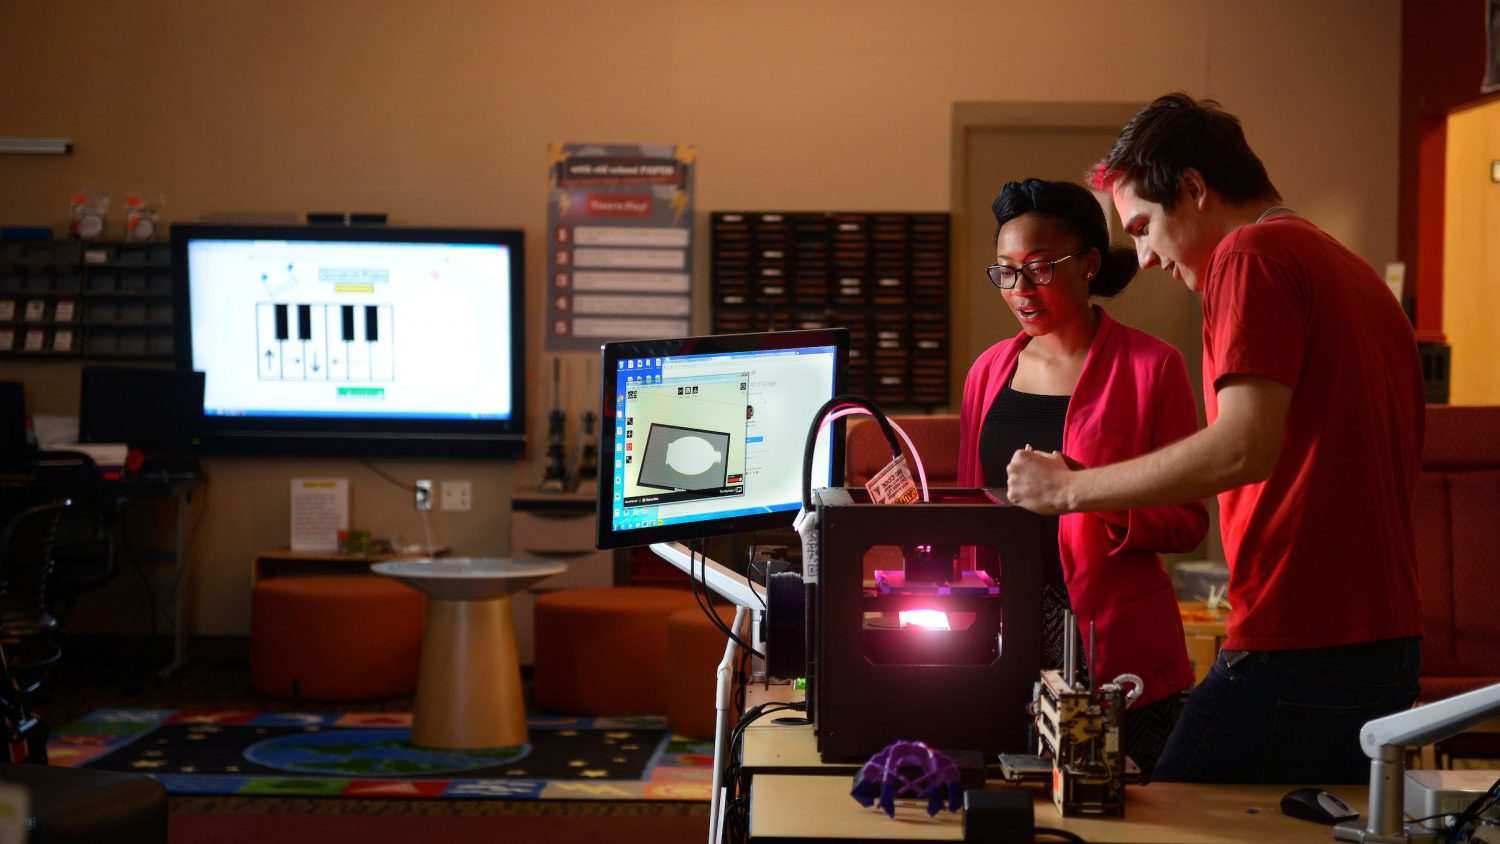 College of education students work in the library at Poe Hall with a Makerbot 3D printer.